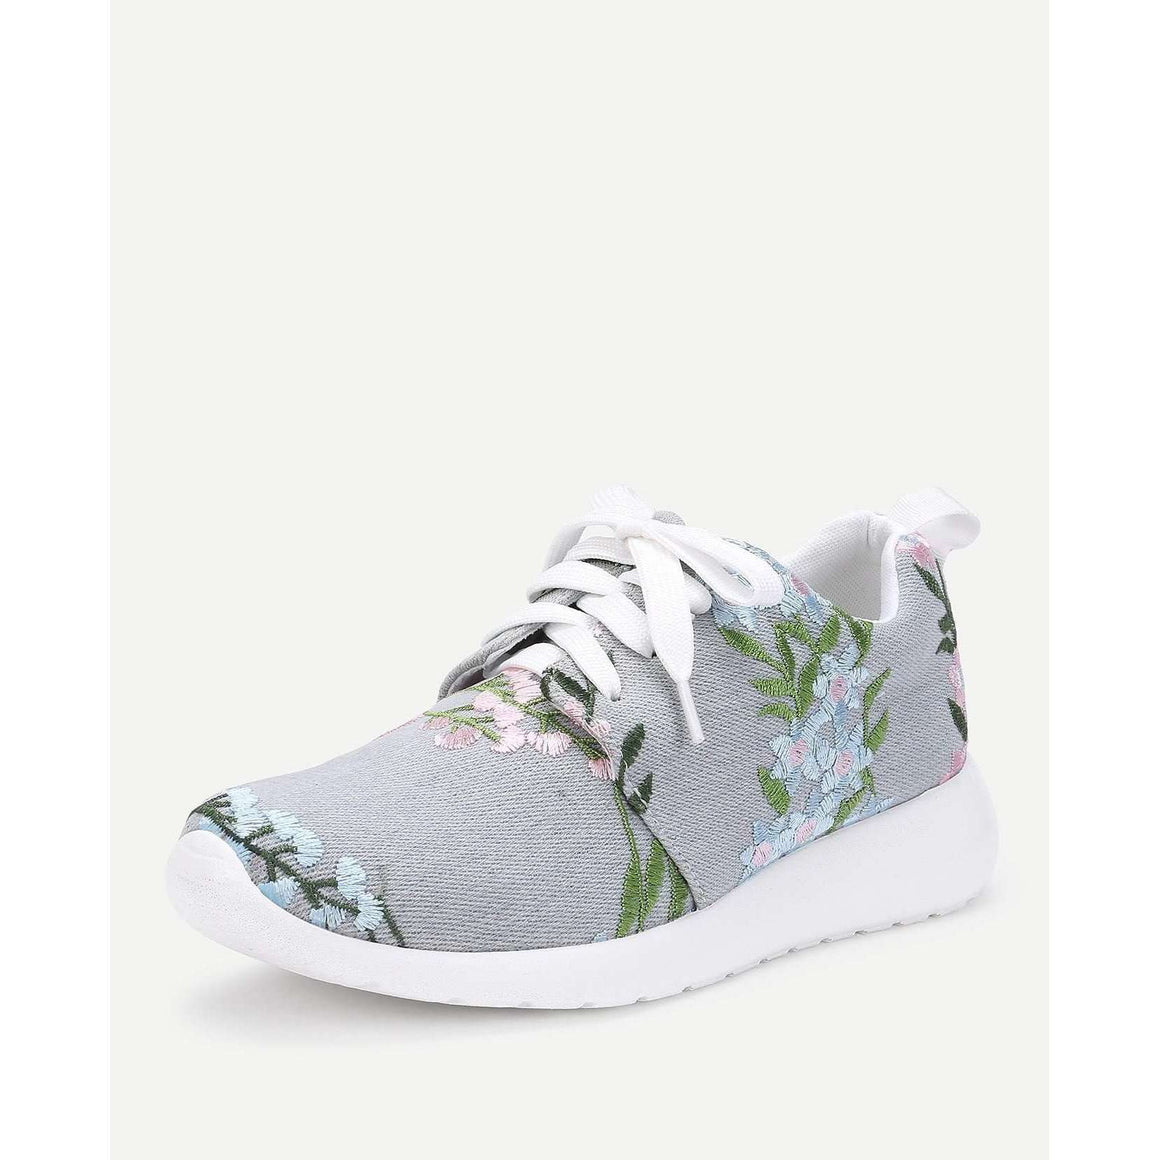 CLOCHE Natura Greenary Sneakers-CLOCHE-CLOCHE